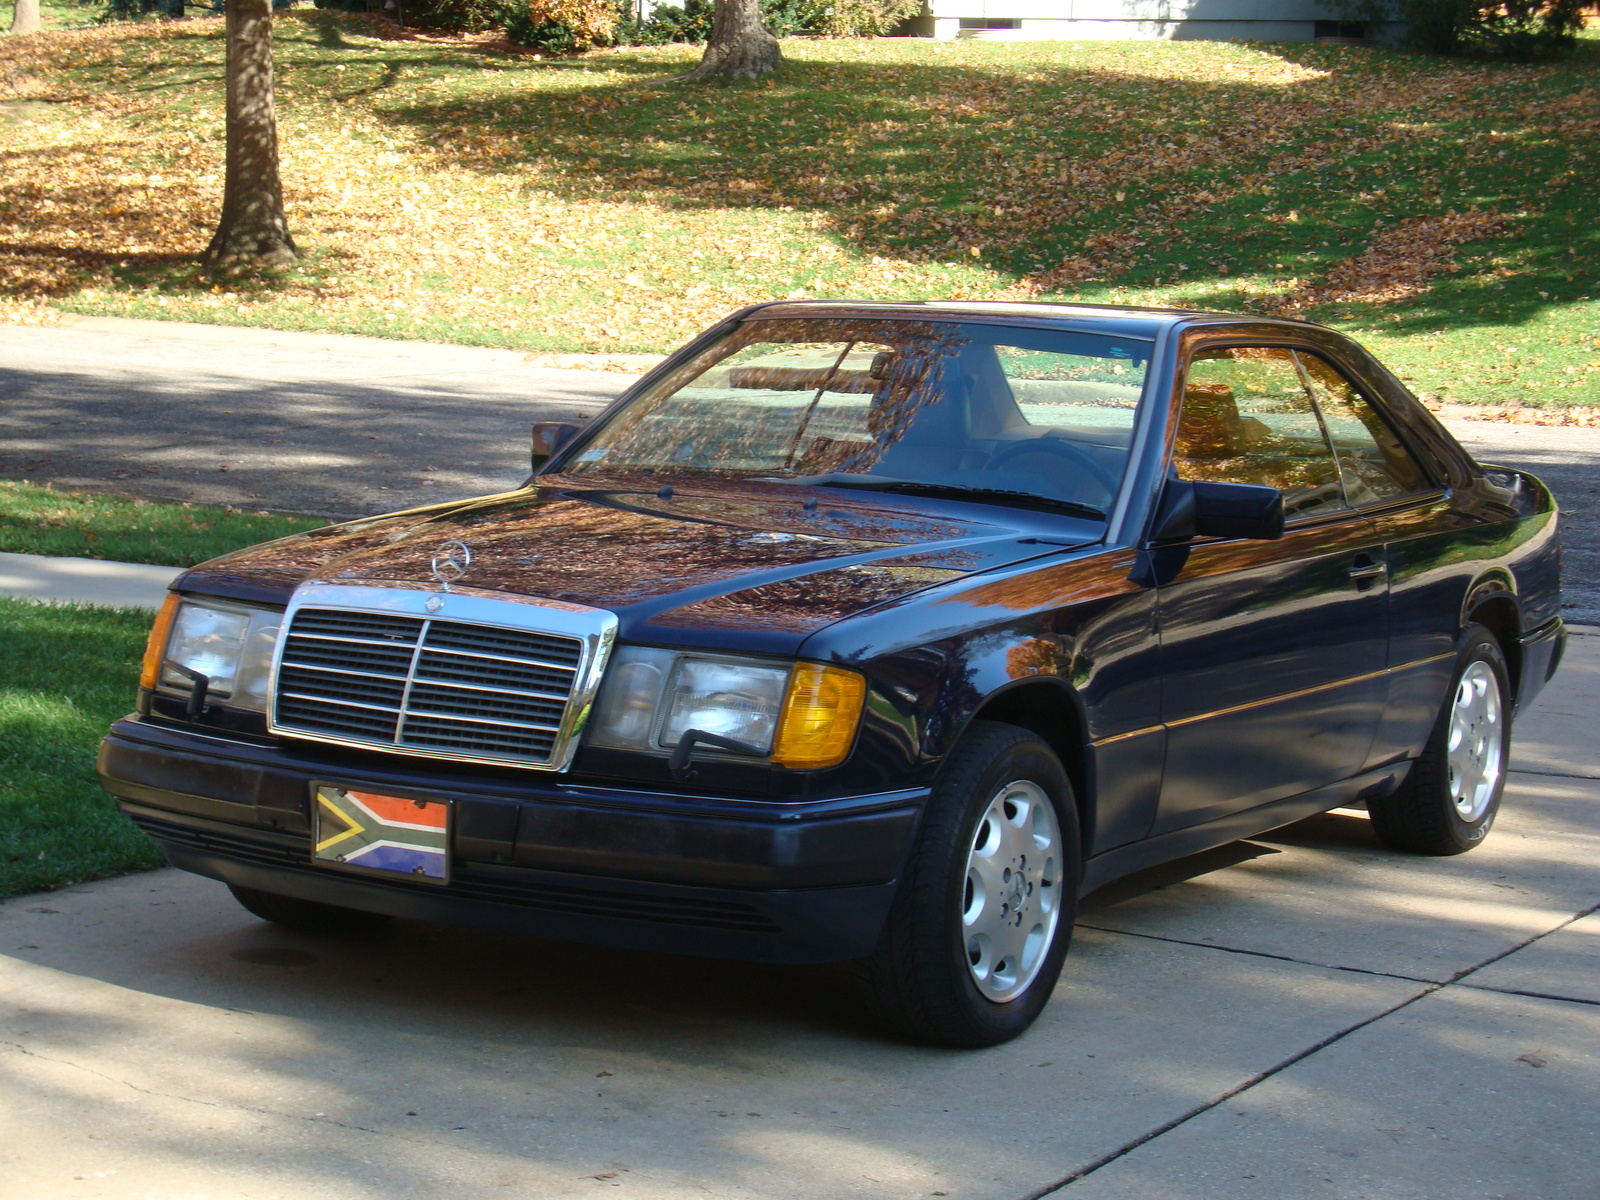 1994 mercedes benz e class vin number search autodetective 1994 mercedes benz e class vin number